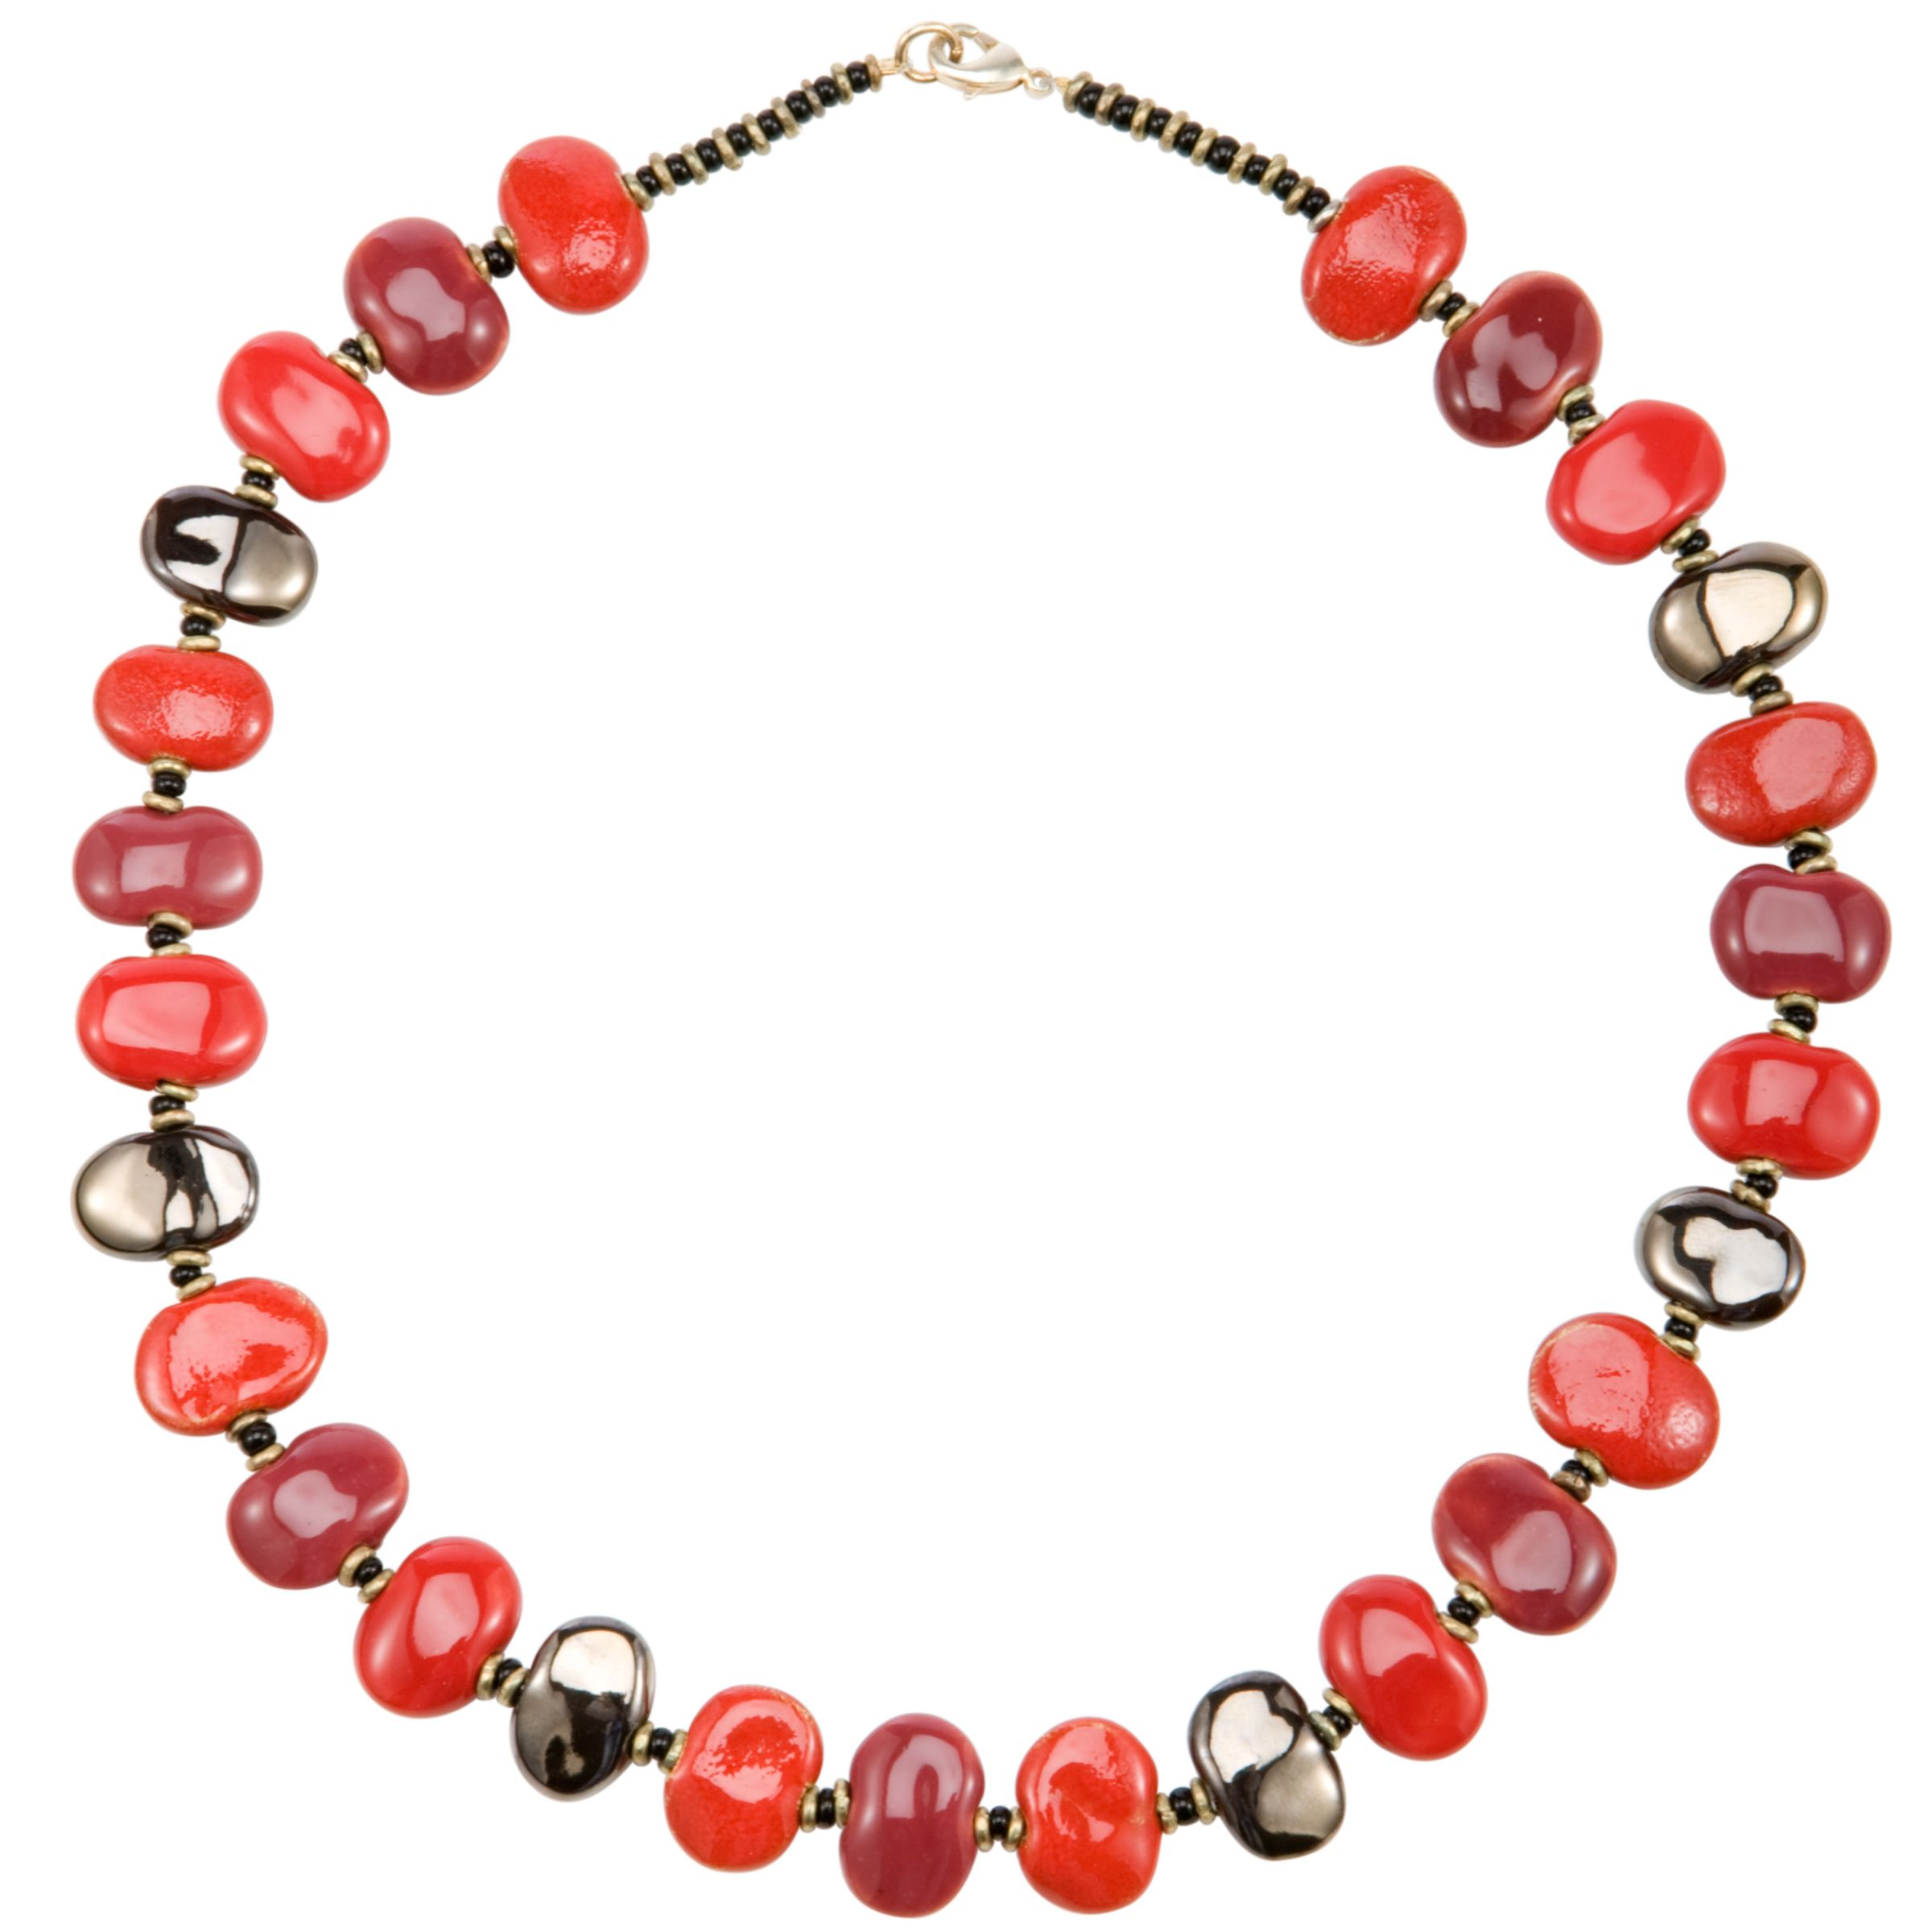 Kazuri Shale Firefly Ceramic Bead Necklace, Red